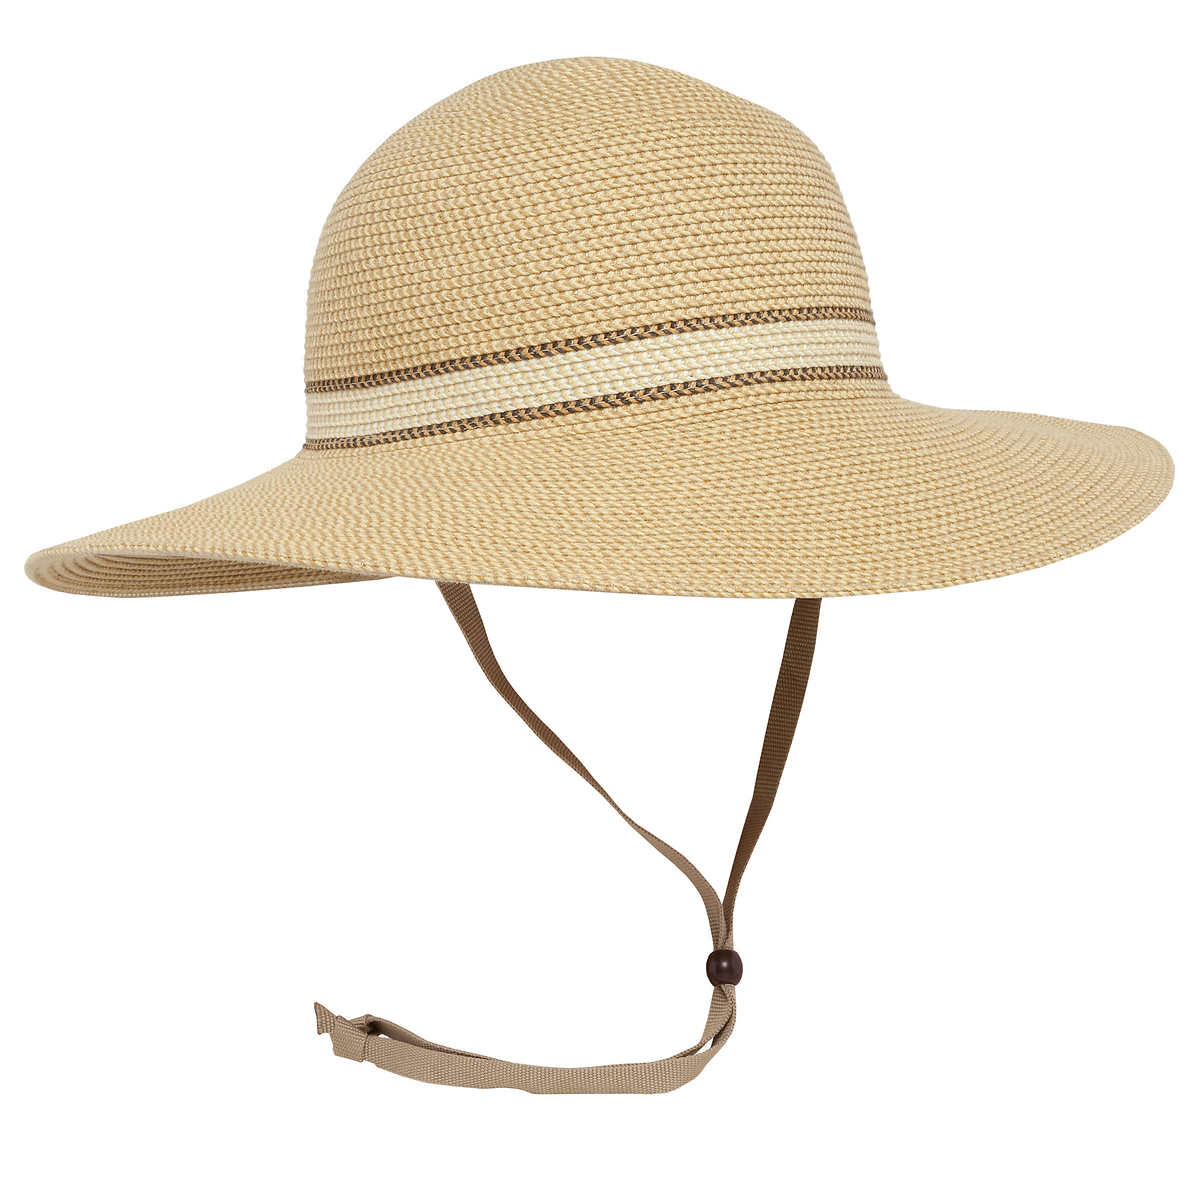 81d1c9395 Solar Escape Ladies' UV Sun Hat